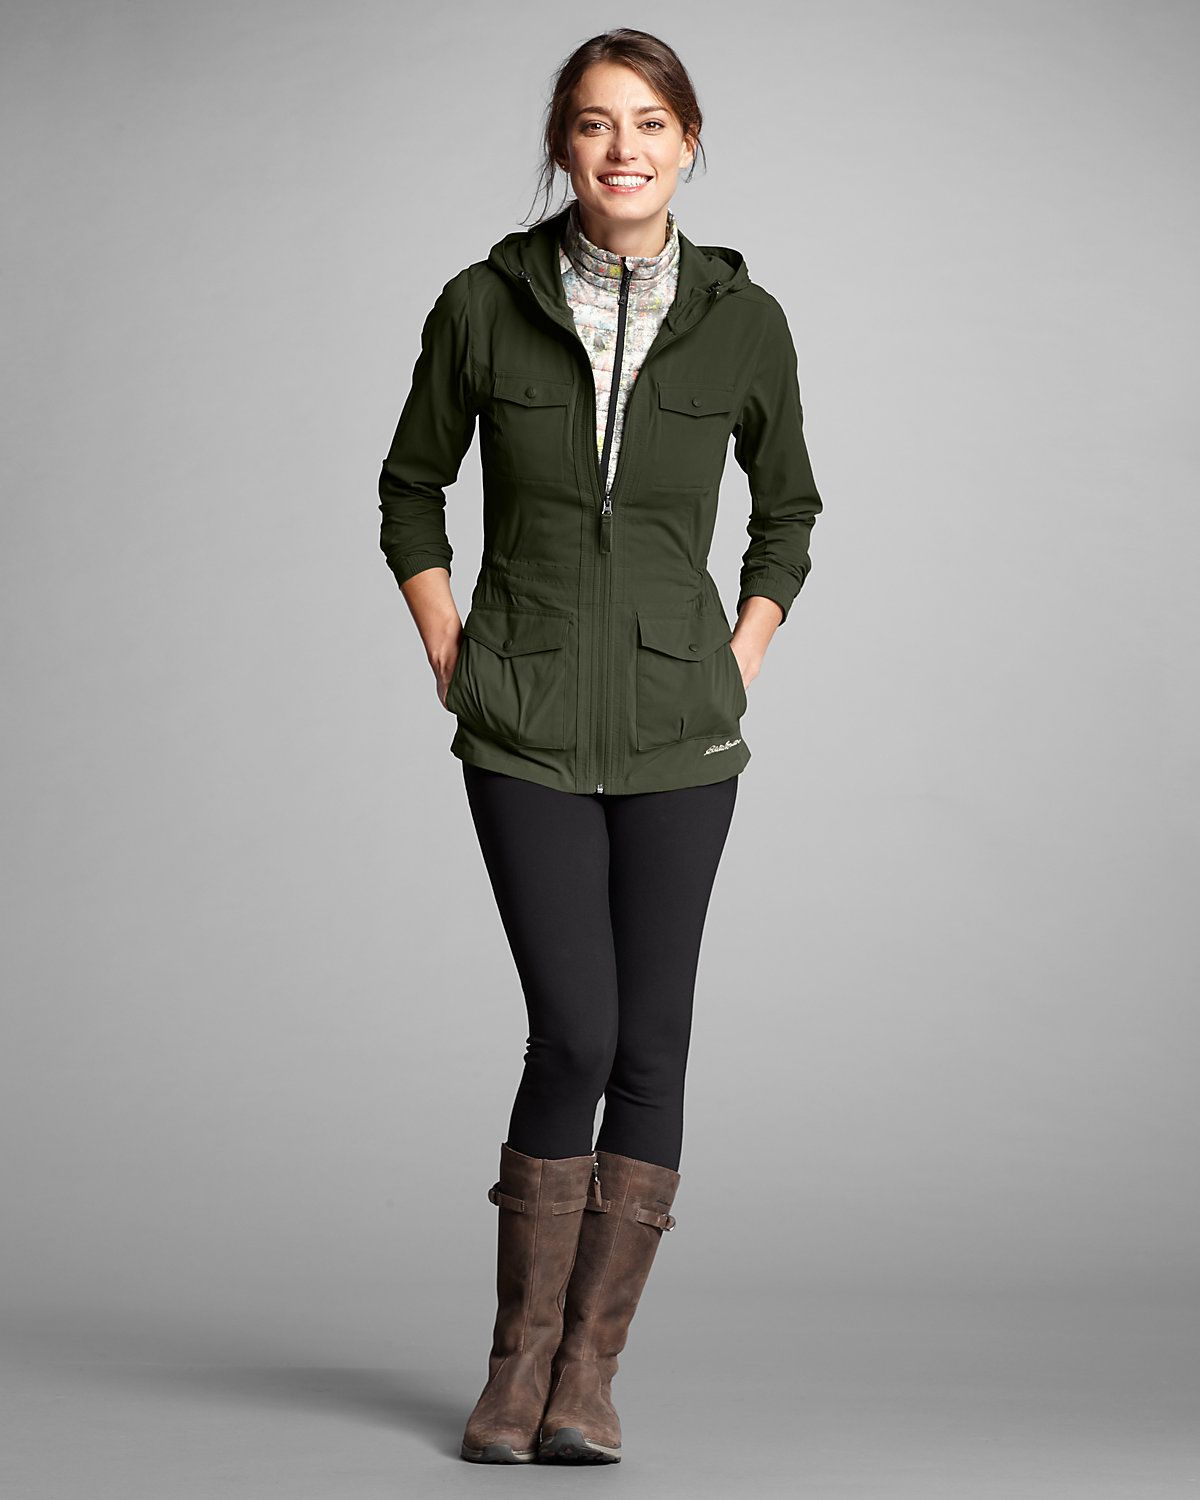 Women's Atlas 2.0 Jacket | Outdoor outfit, Clothes, Camping